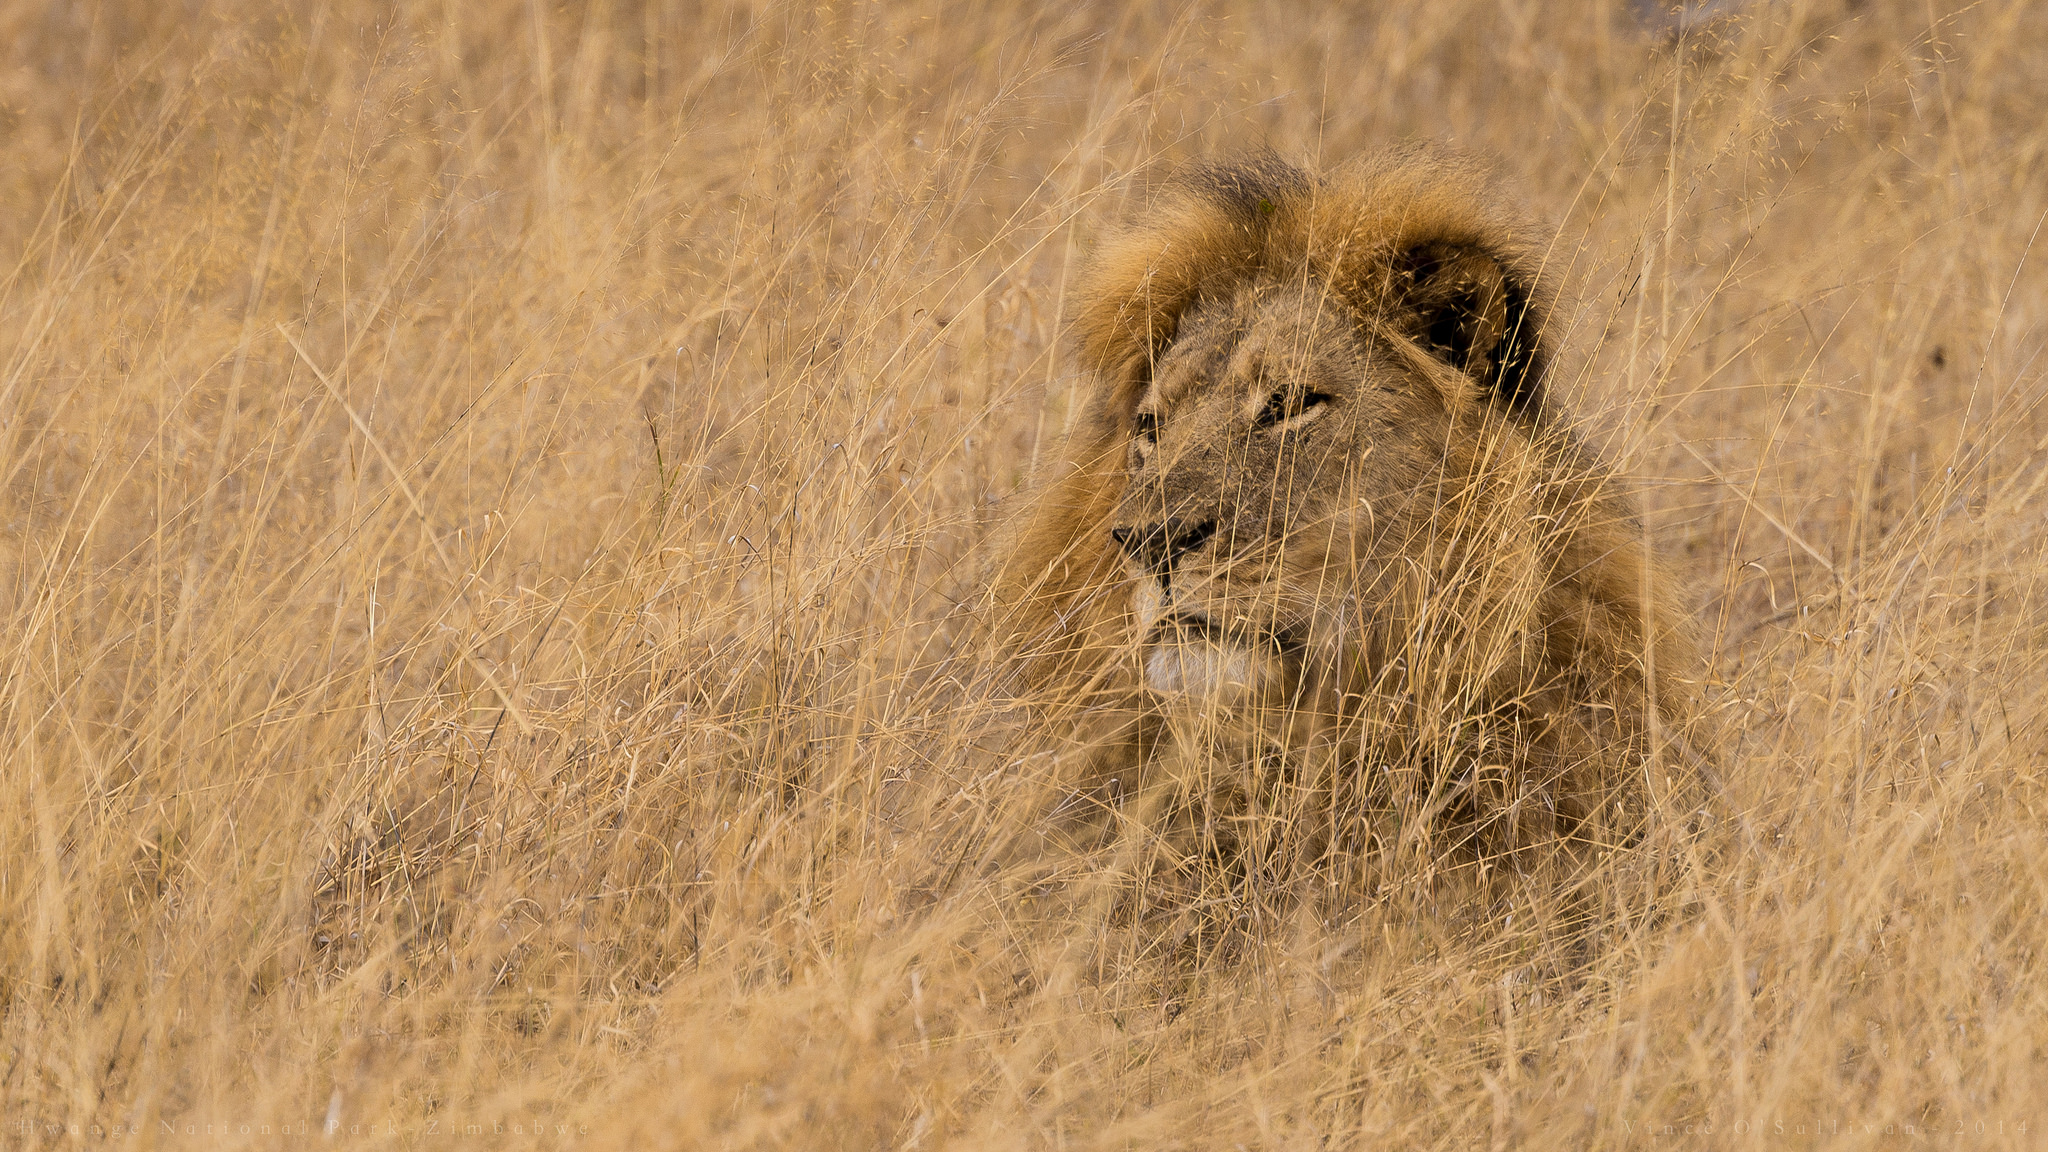 Death Of Cecil The Lion And The Path To Healing